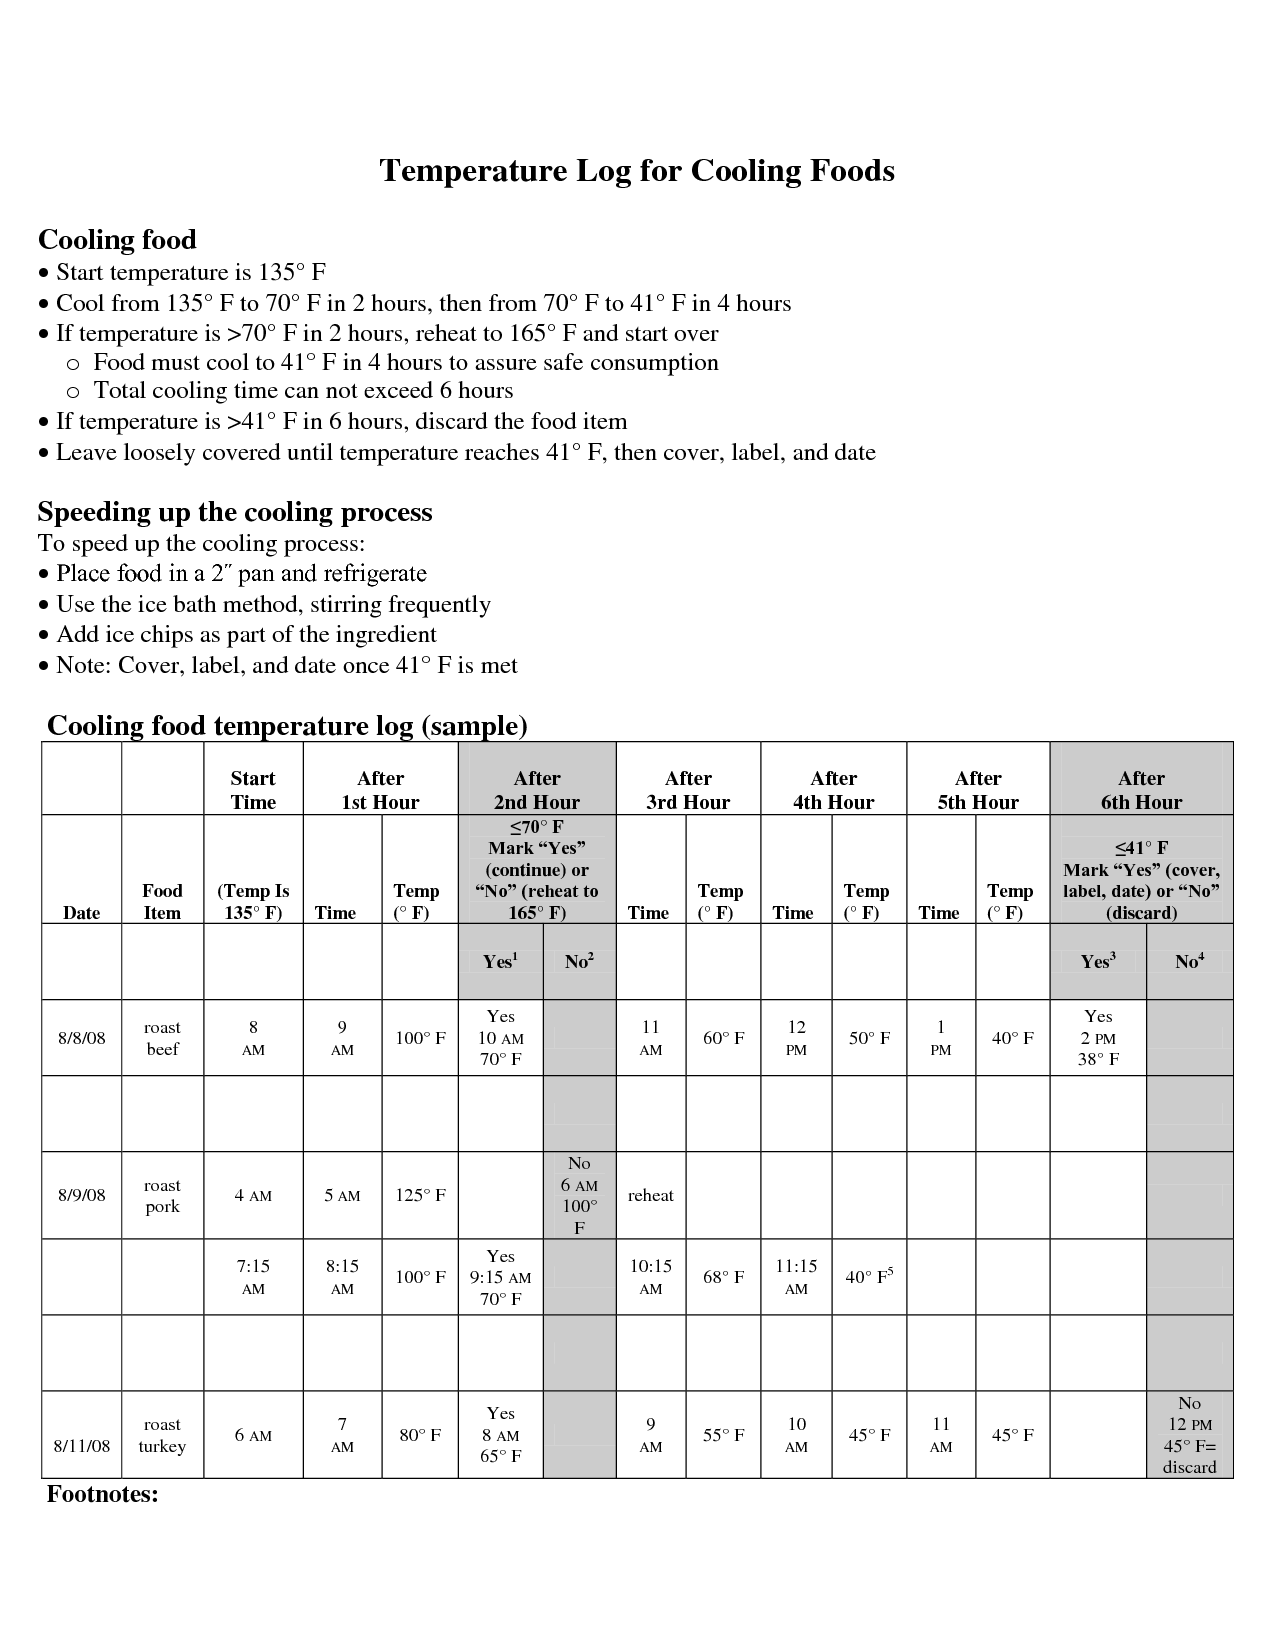 HACCP Plan Template | Food Safety Temperature Log http://www ...